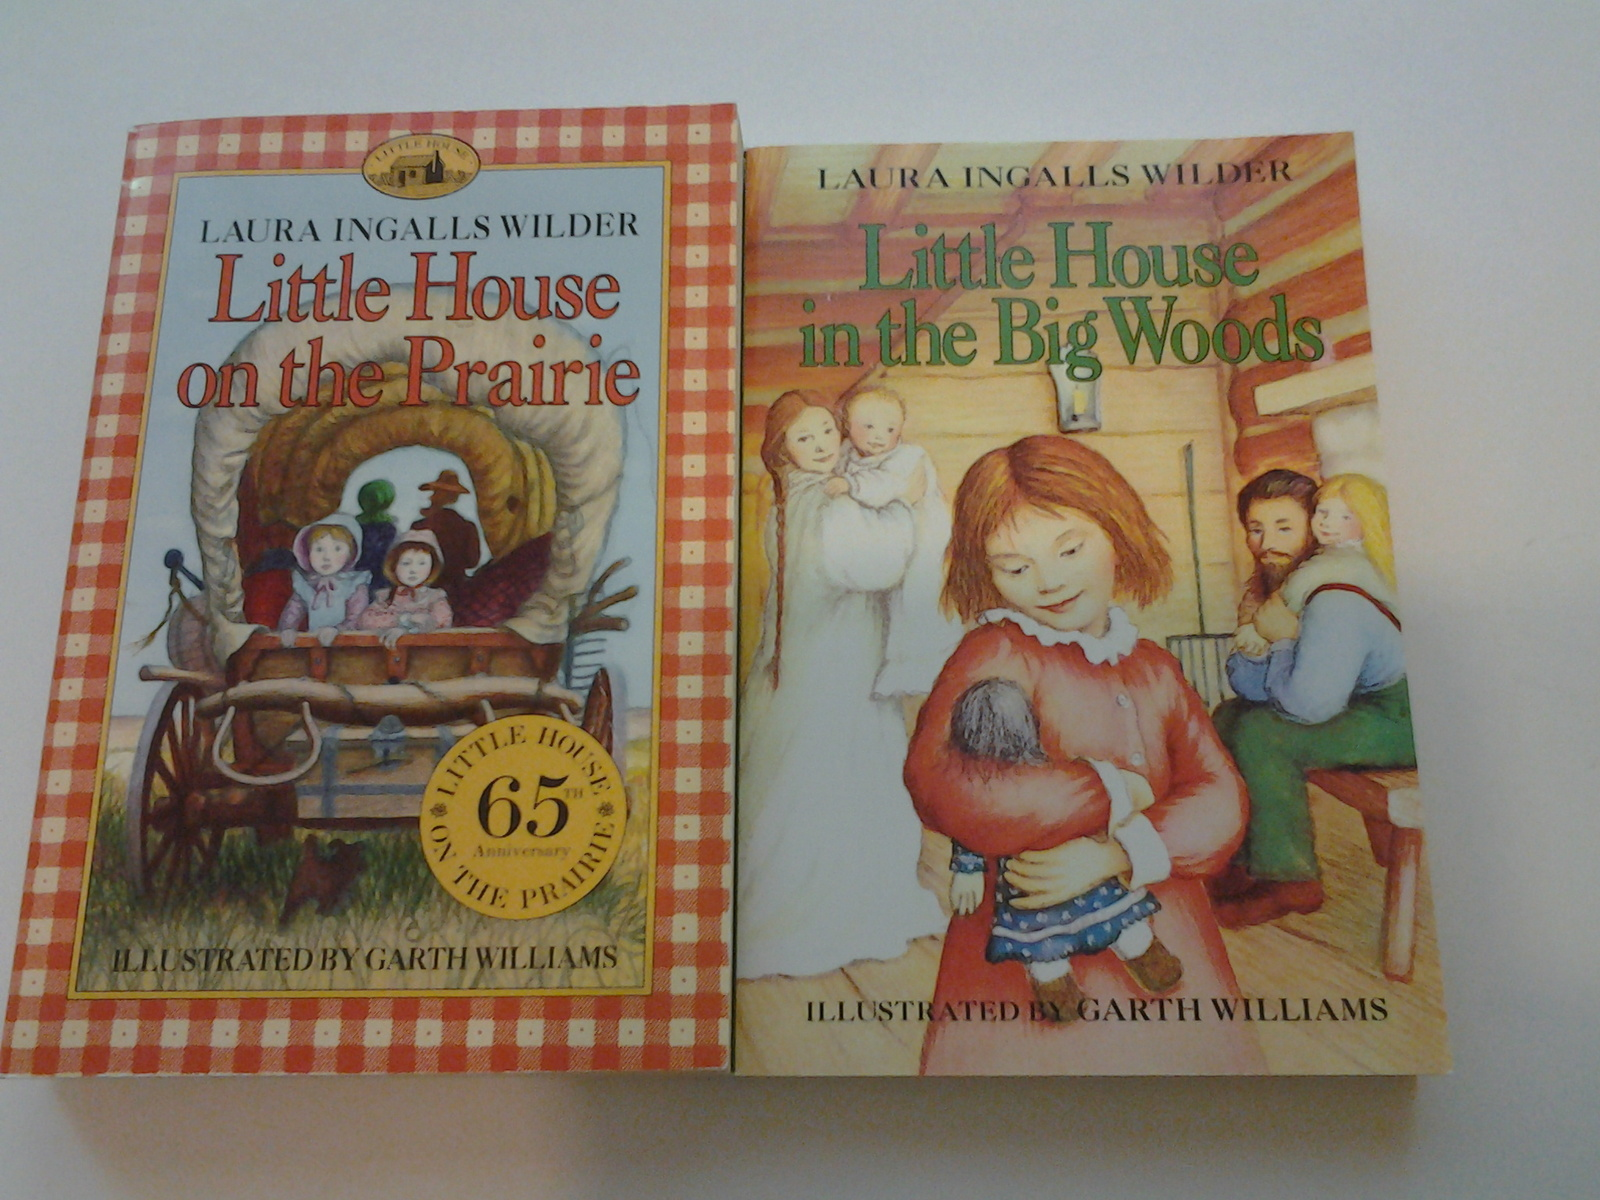 Little House on the Prarie & Little House in the Big Woods 2003 PB VG, Free Frt